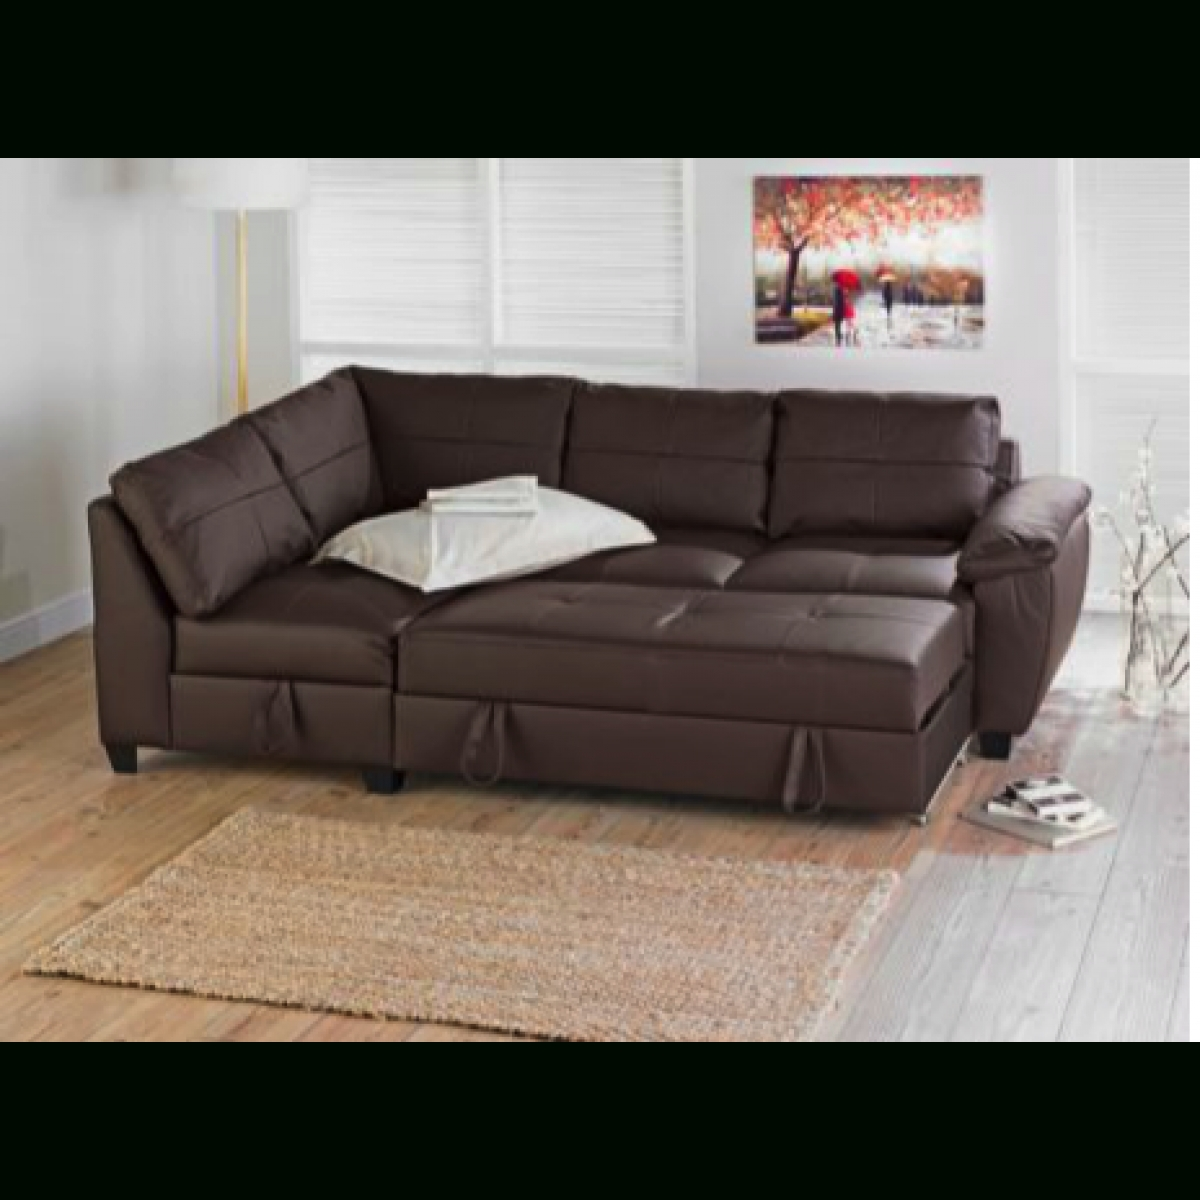 Fernando Leather Left Hand Sofa Bed Corner Group – Chocolate For Leather Corner Sofa Bed (View 2 of 20)